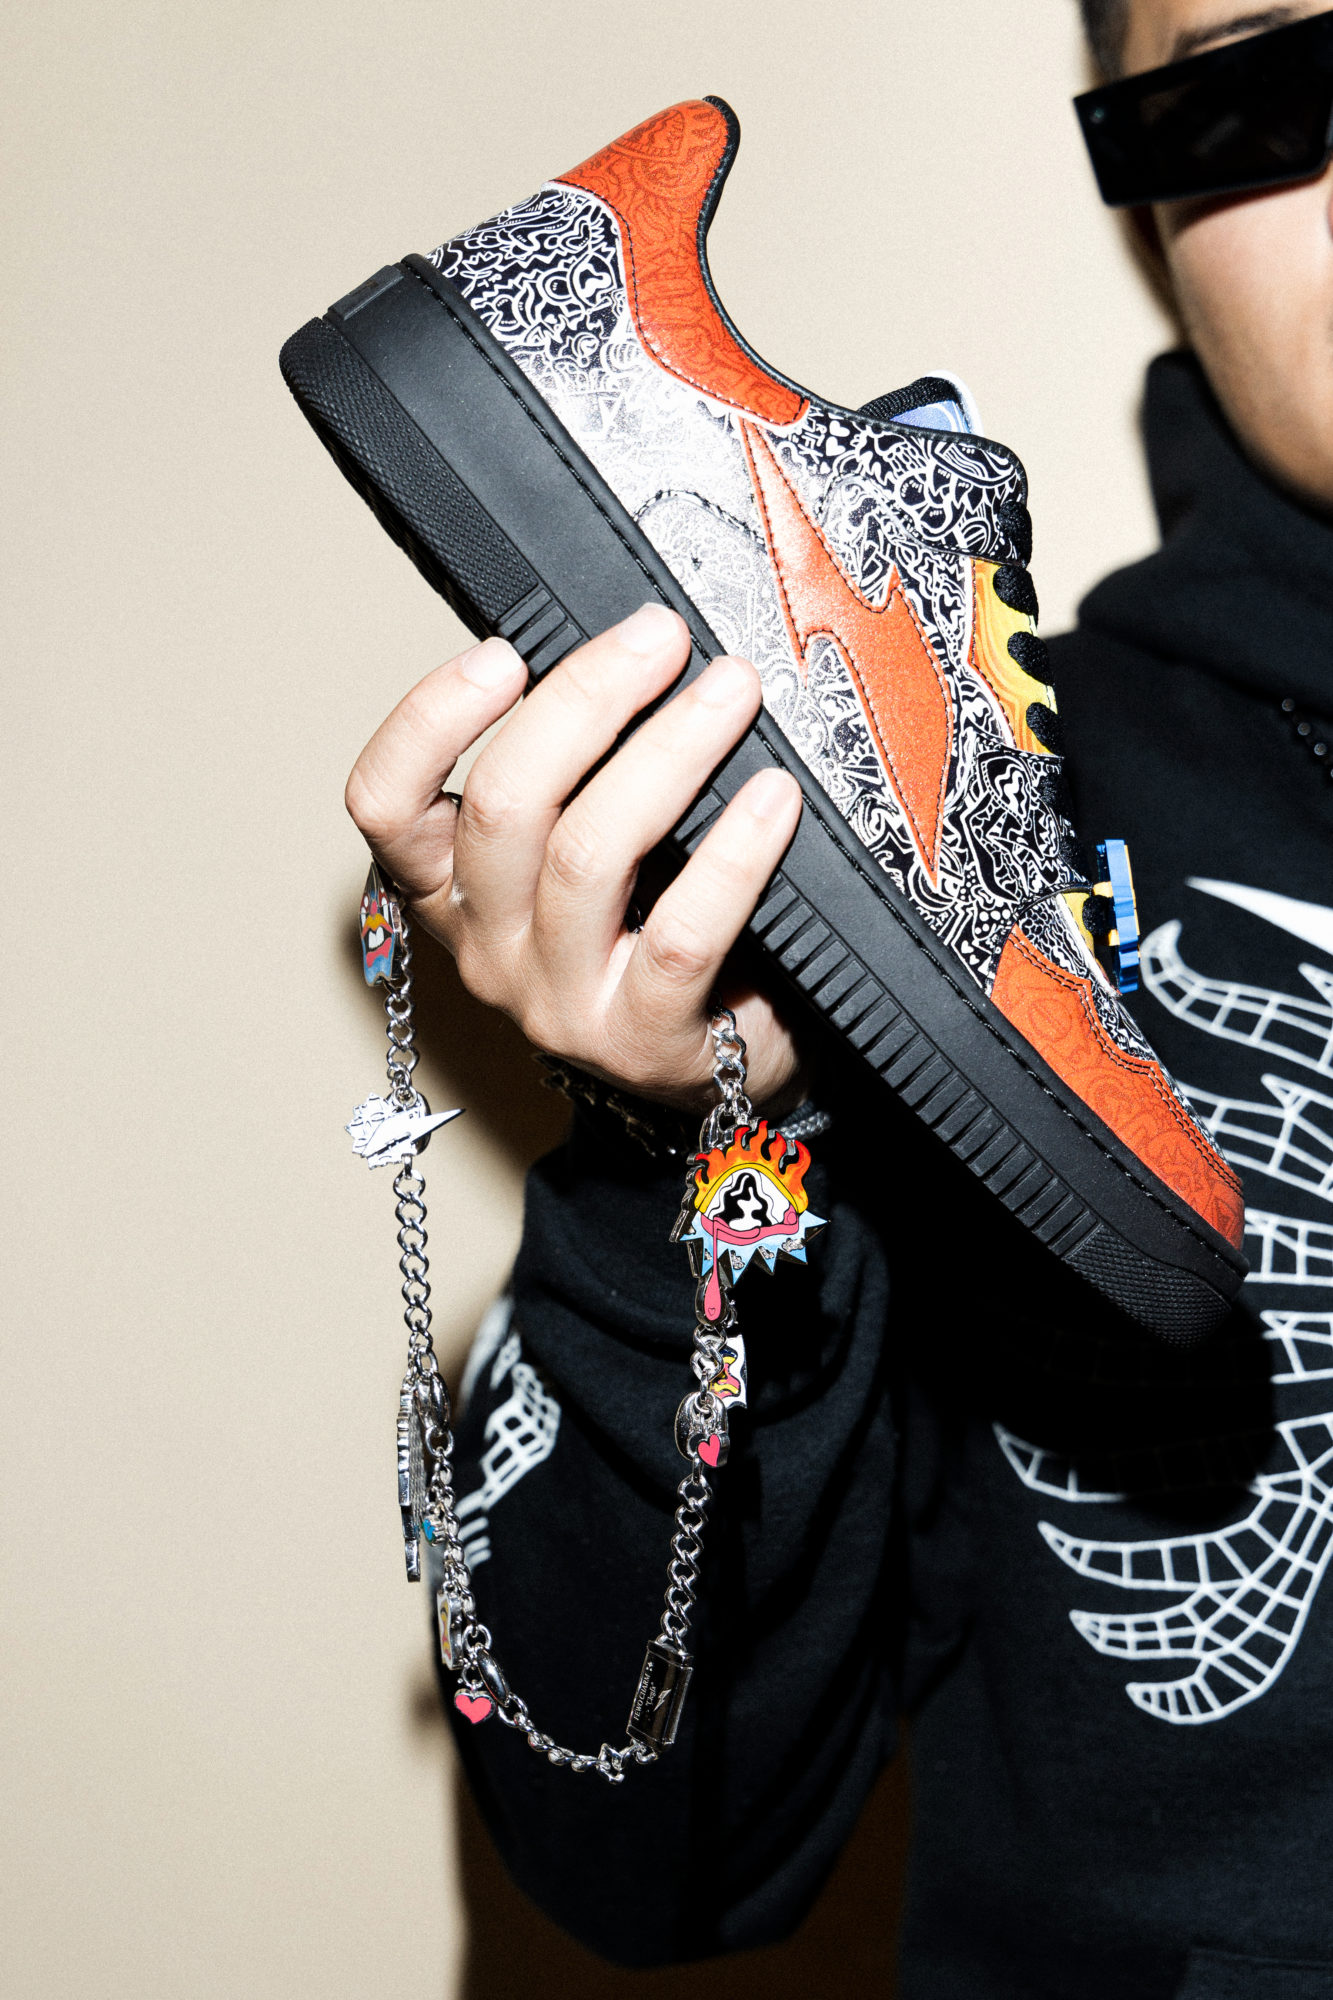 The company sells NFT cybersneakers for $90,000 a pop, attracting an $8.2 million investment round led by Andreesen Horowitz